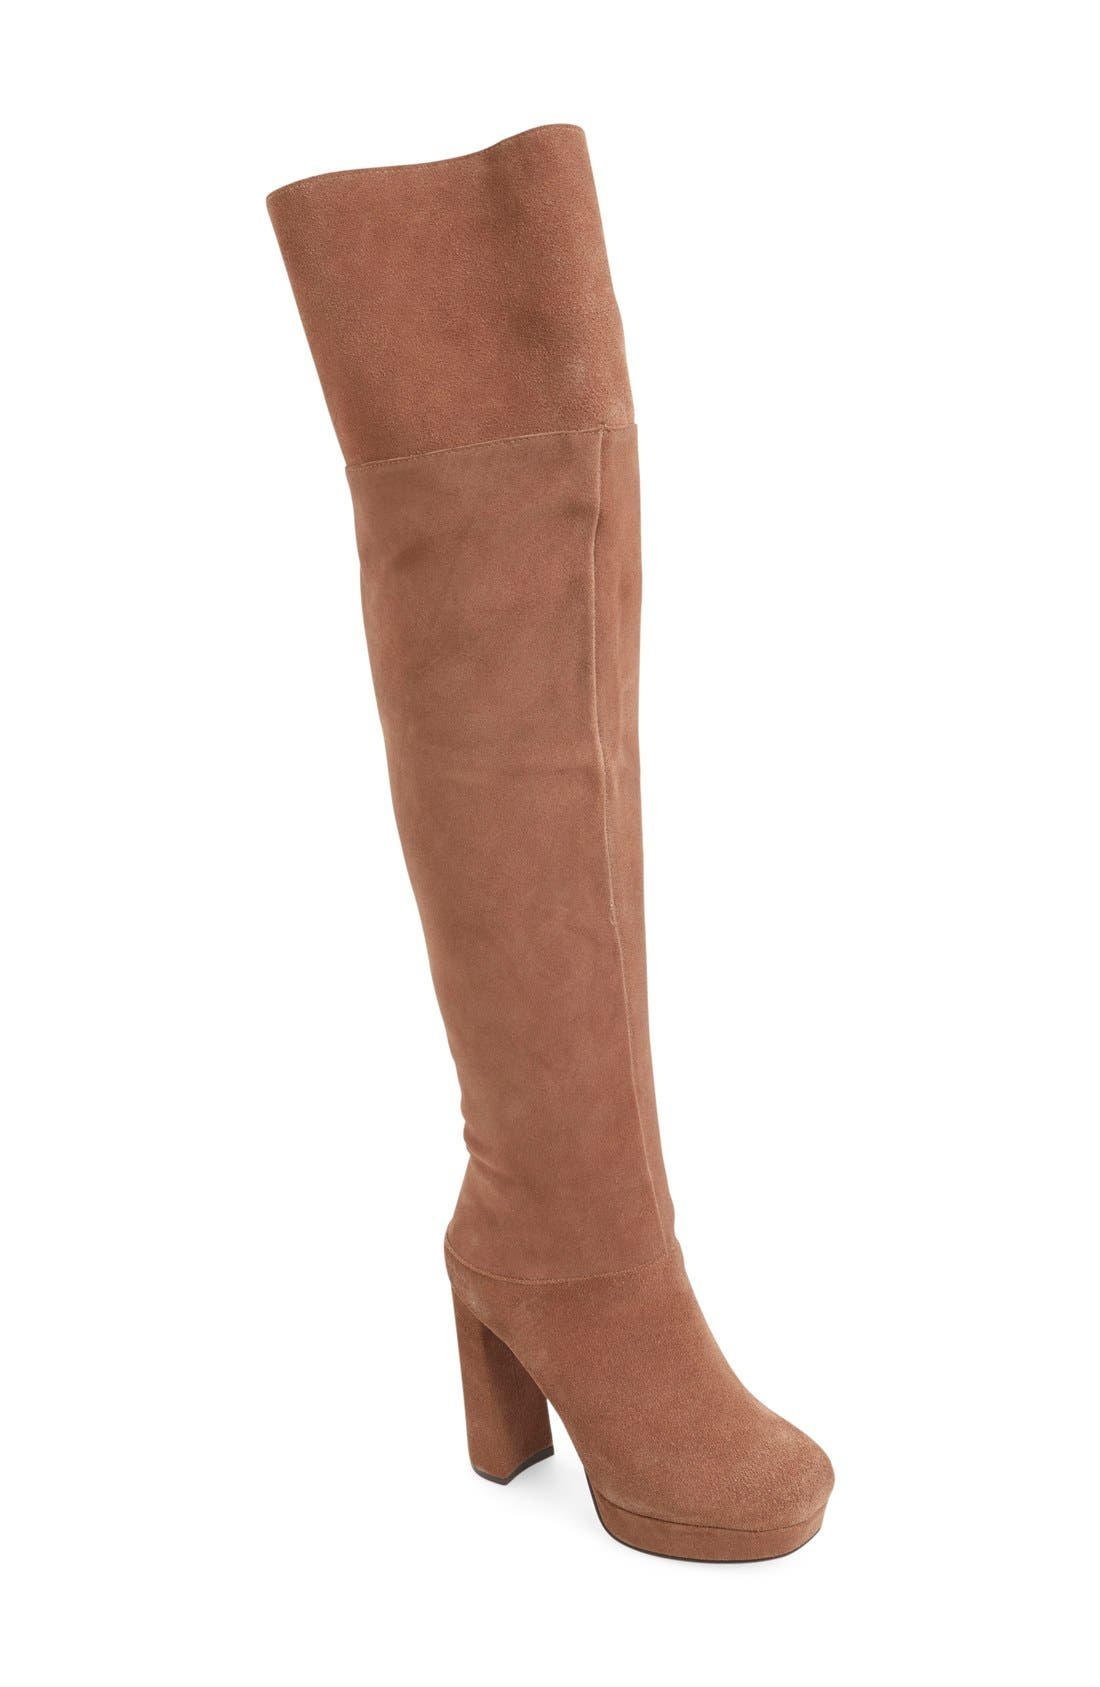 Main Image - Jeffrey Campbell 'Destino' Over the Knee Platform Boot (Women)